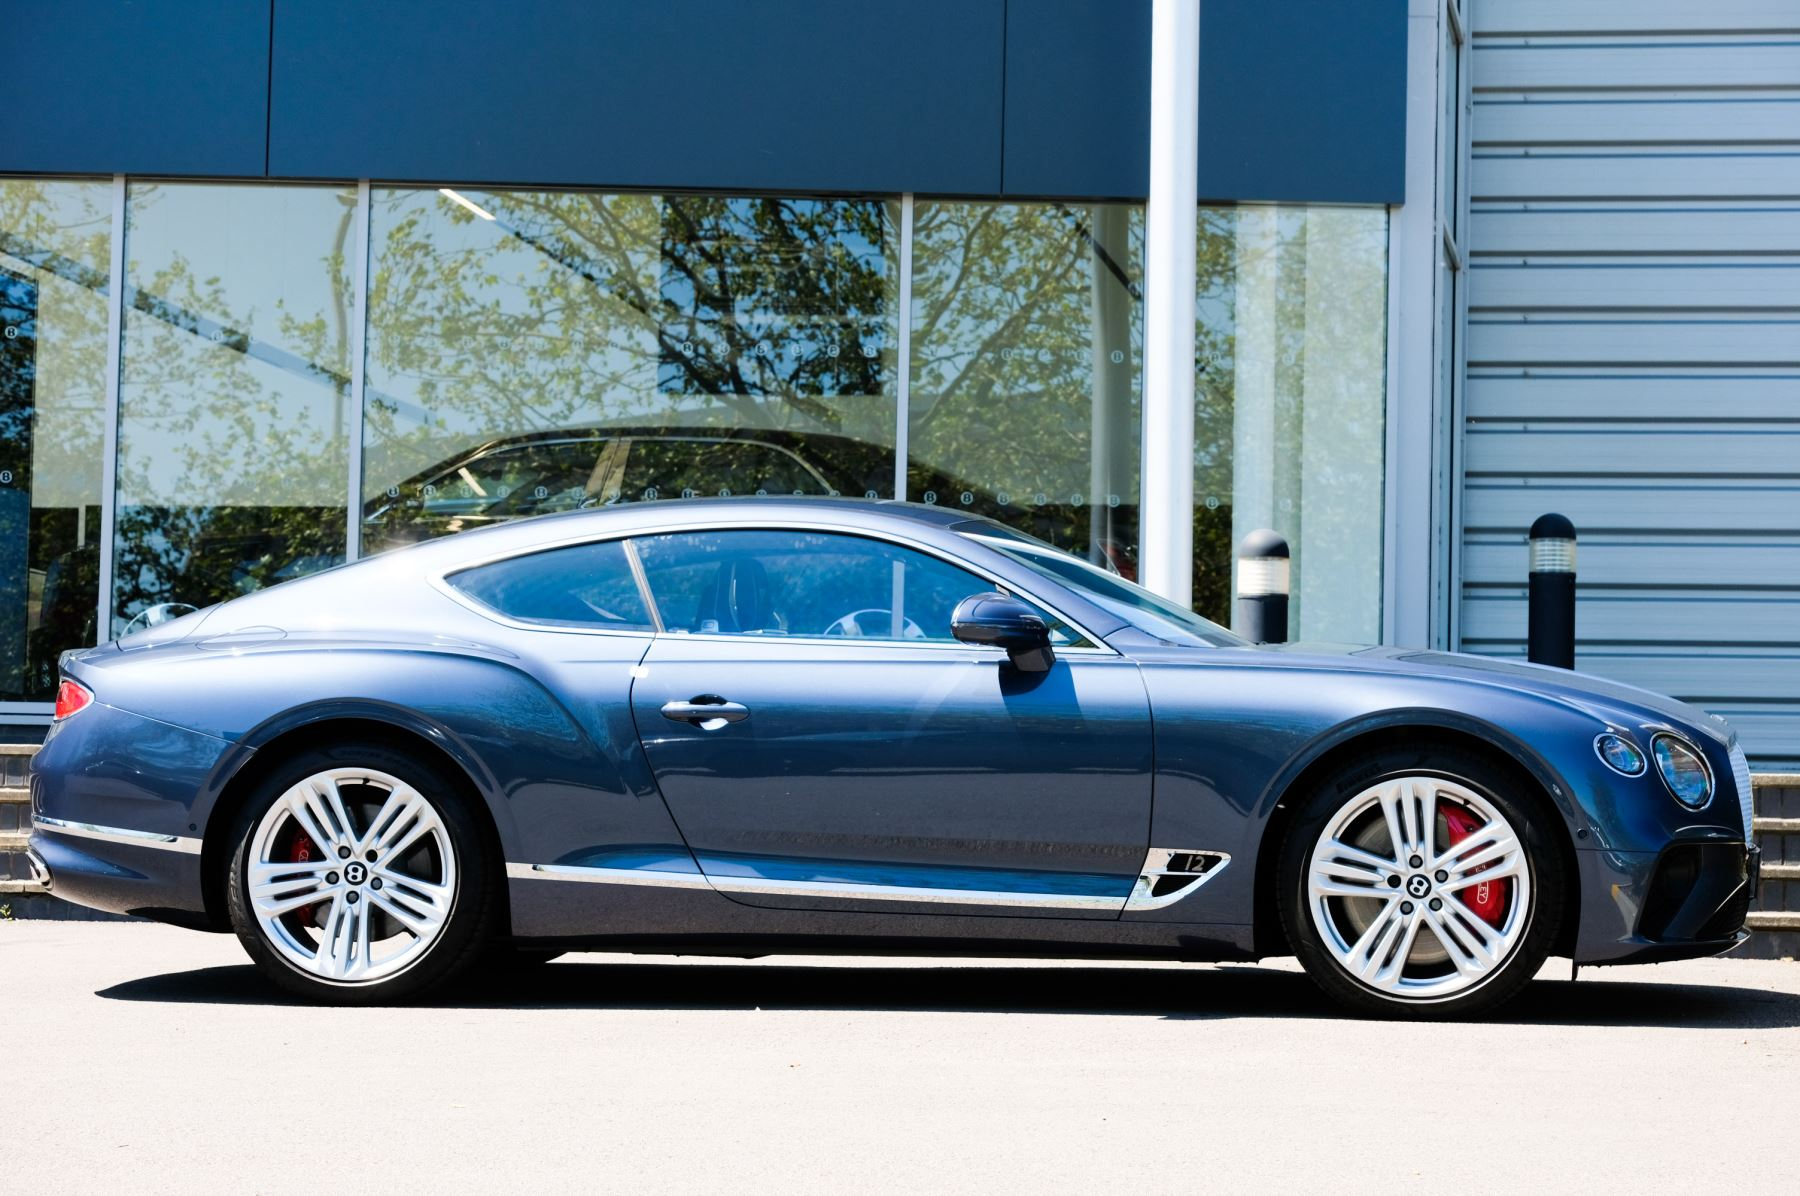 Bentley Continental GT 6.0 W12 - CITY + TOURING SPECIFICATION image 3